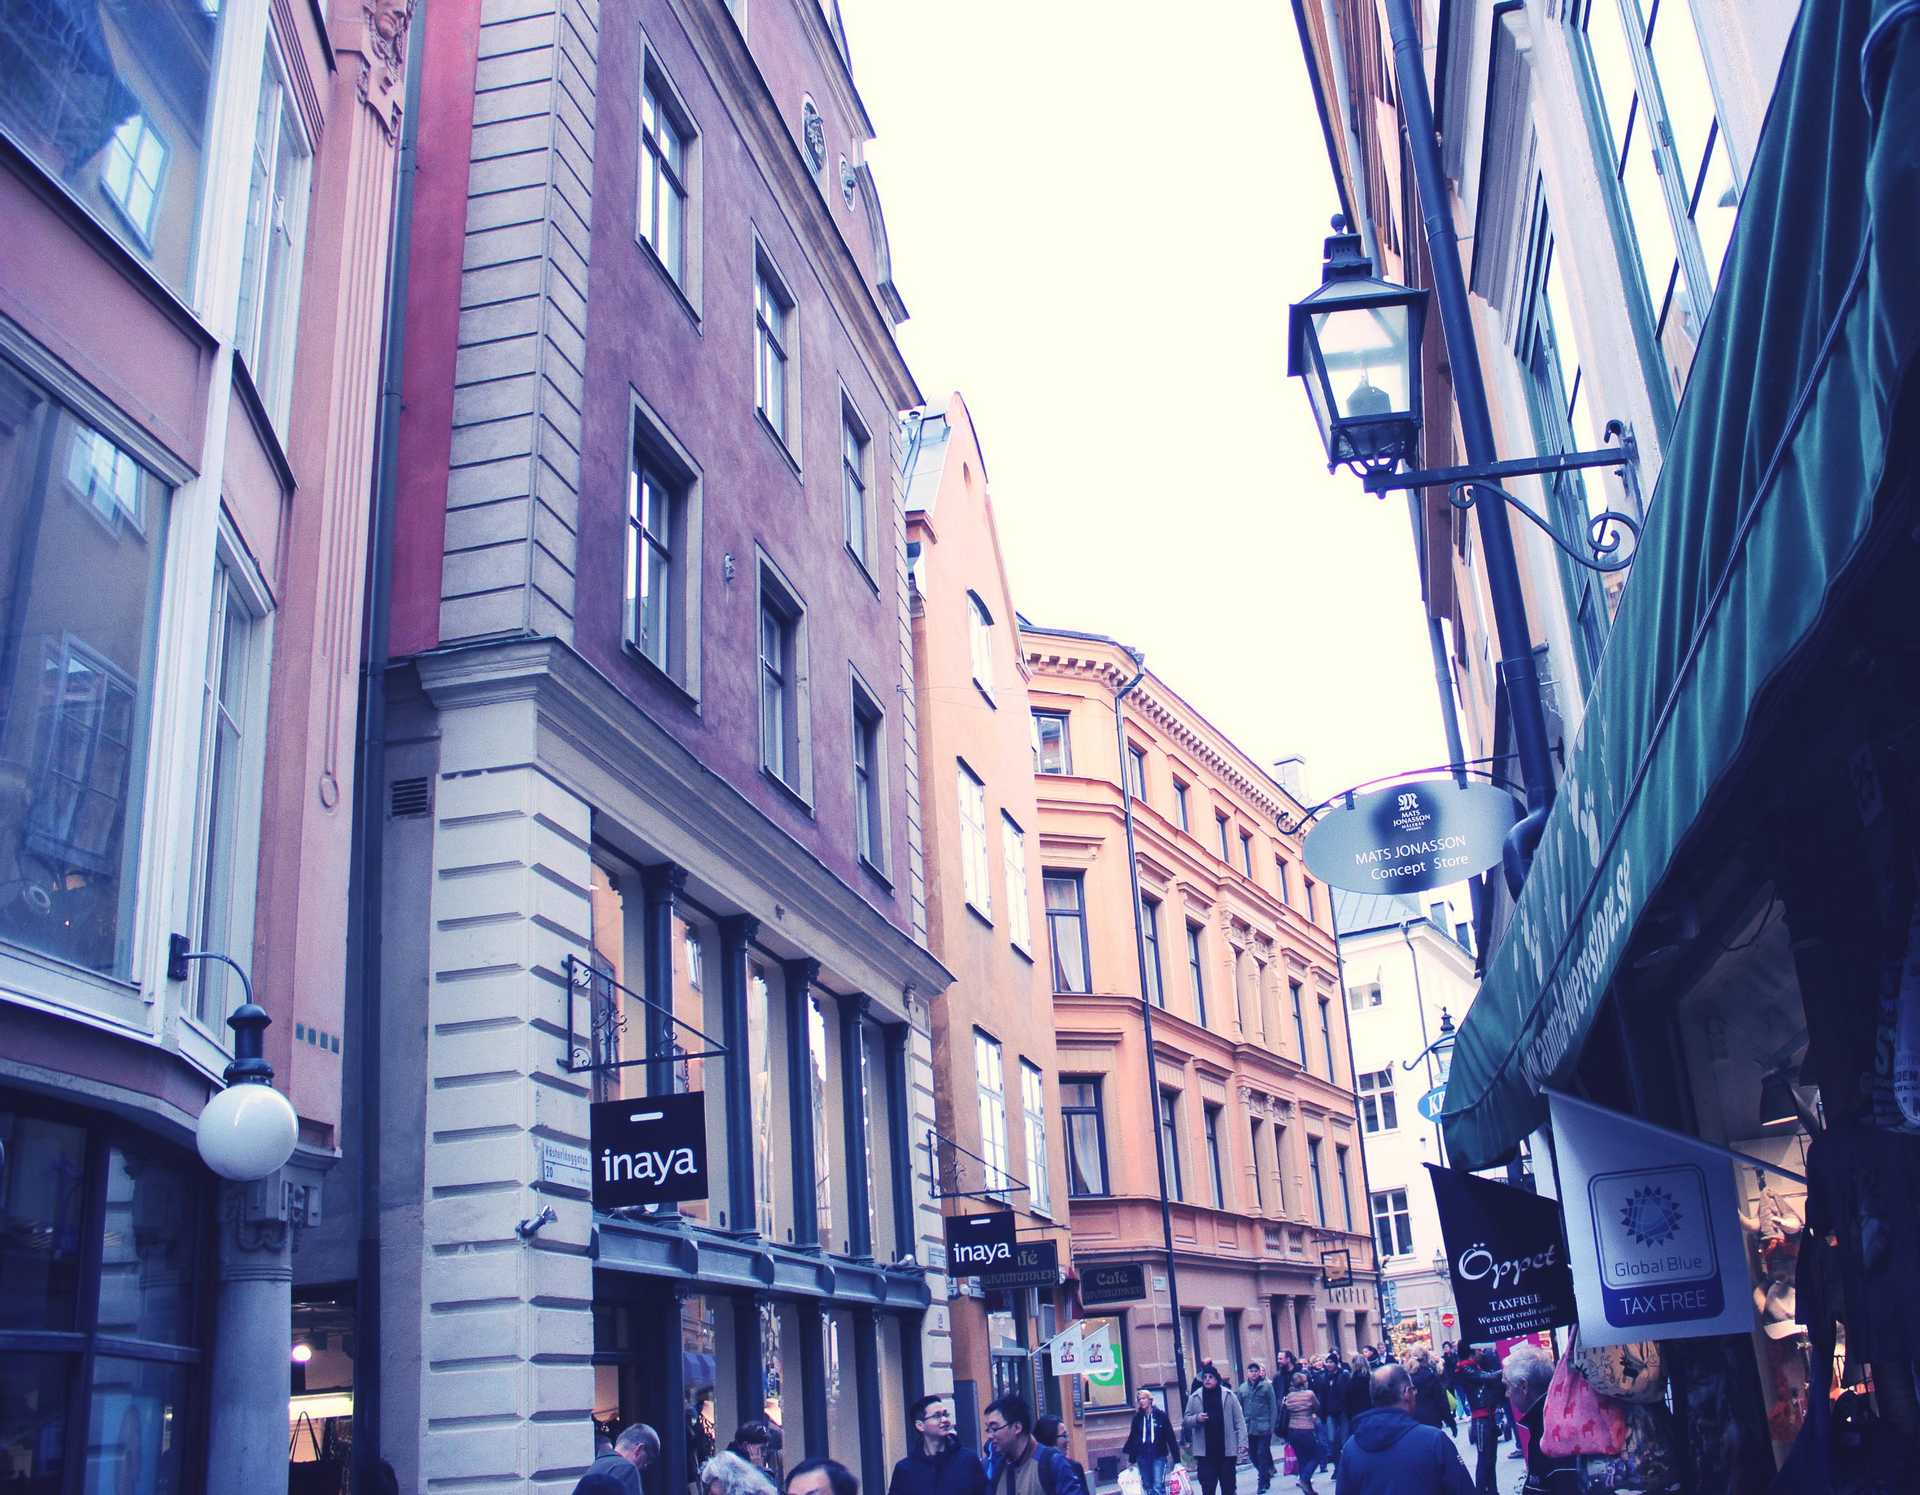 Stockholm-day-2-visit-europe-nunaavane-haircare-beauty-blogger7.JPG_effected